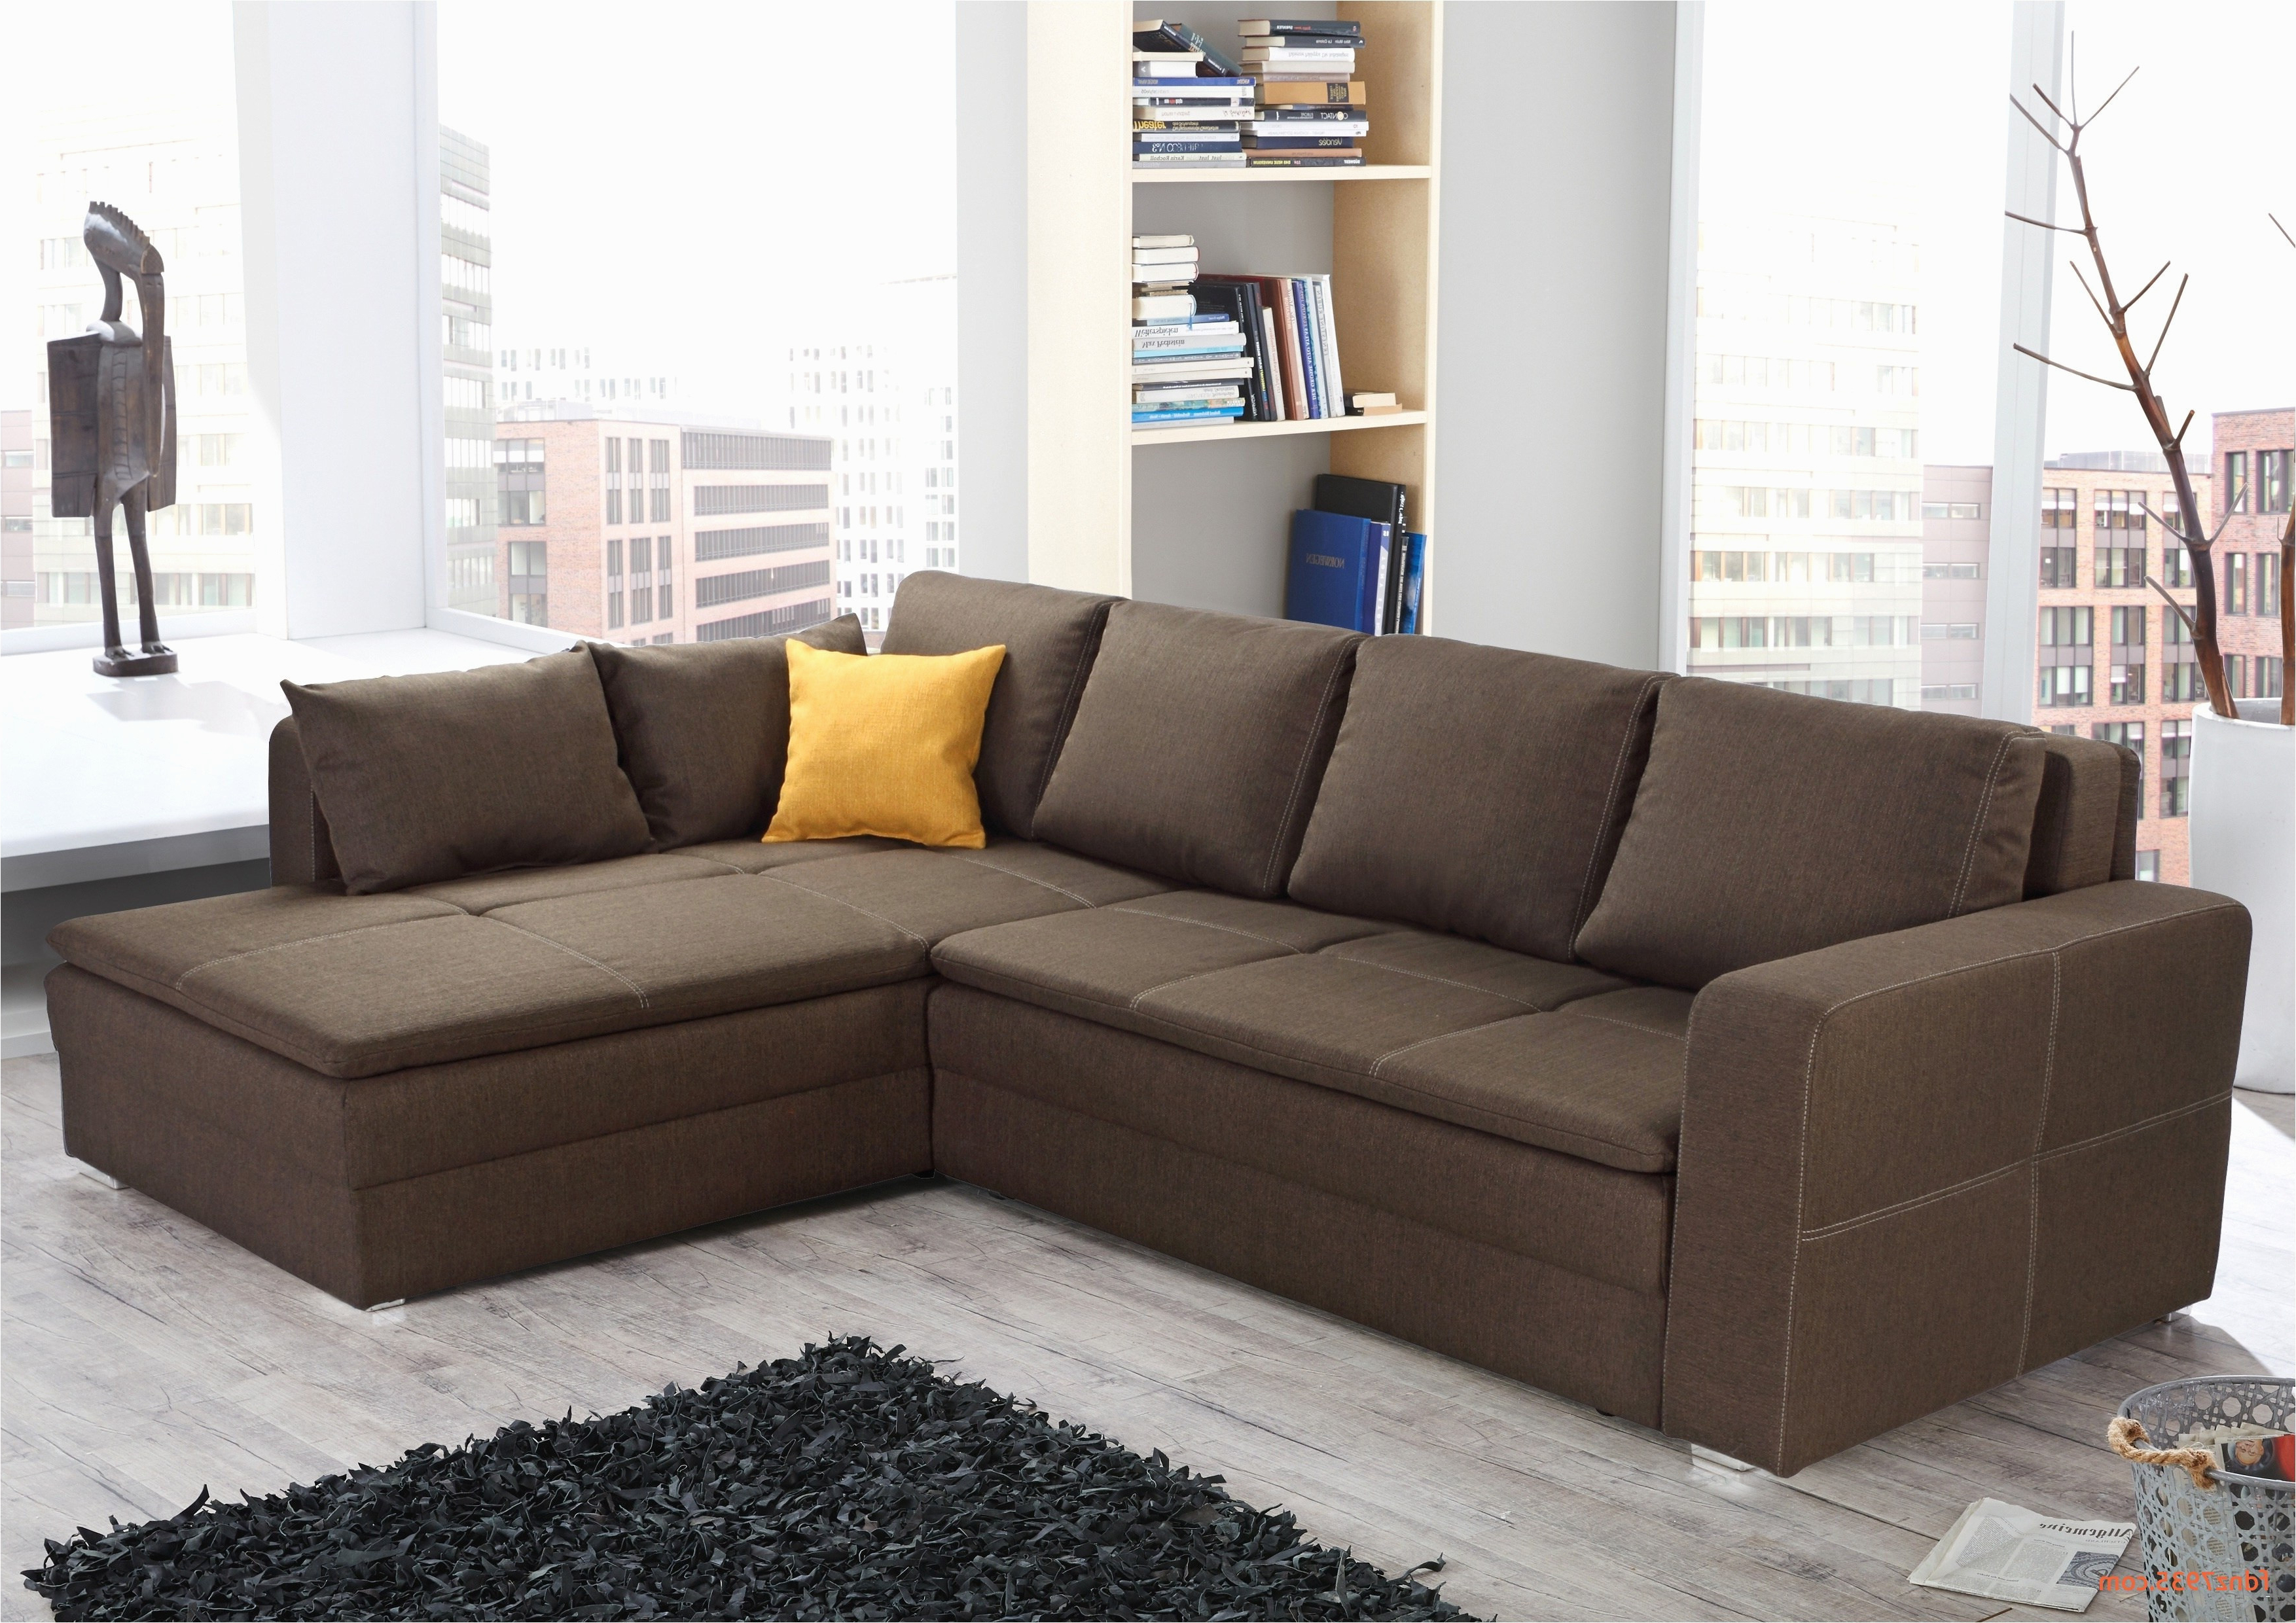 Popular Living Room Sofa With Chaise Unique 5 Piece Leather Sectional Sofa With Regard To Aquarius Light Grey 2 Piece Sectionals With Laf Chaise (View 18 of 20)